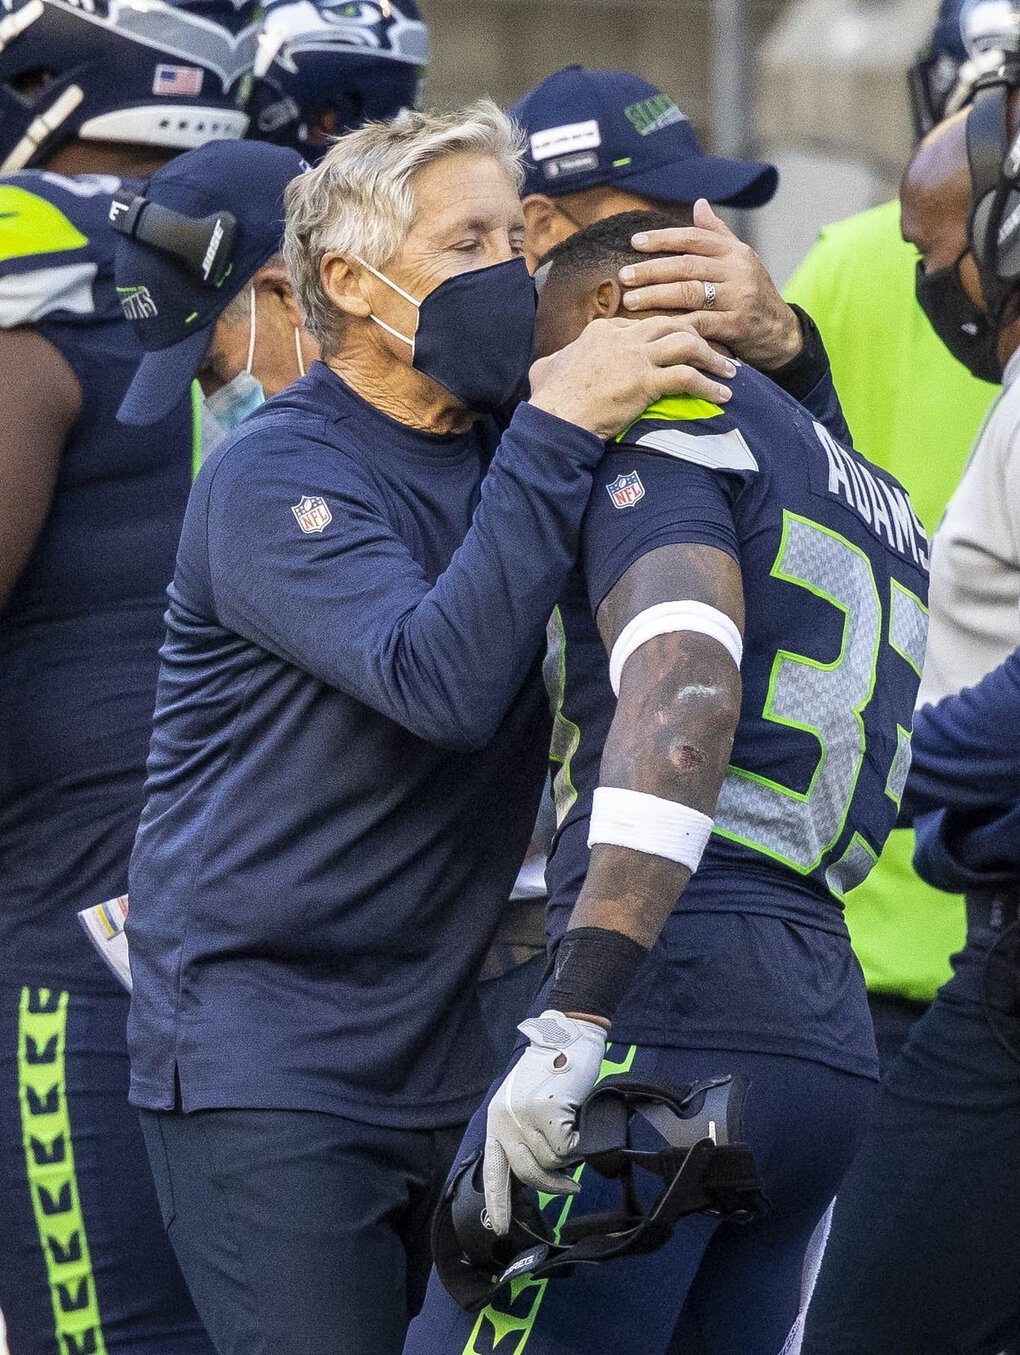 Pete Carroll grabs safety Jamal Adams after the Seahawks intercepted Dak Prescott on the Cowboys final play of the game to win 38-31 on Sunday at CenturyLink Field. (Dean Rutz / The Seattle Times)